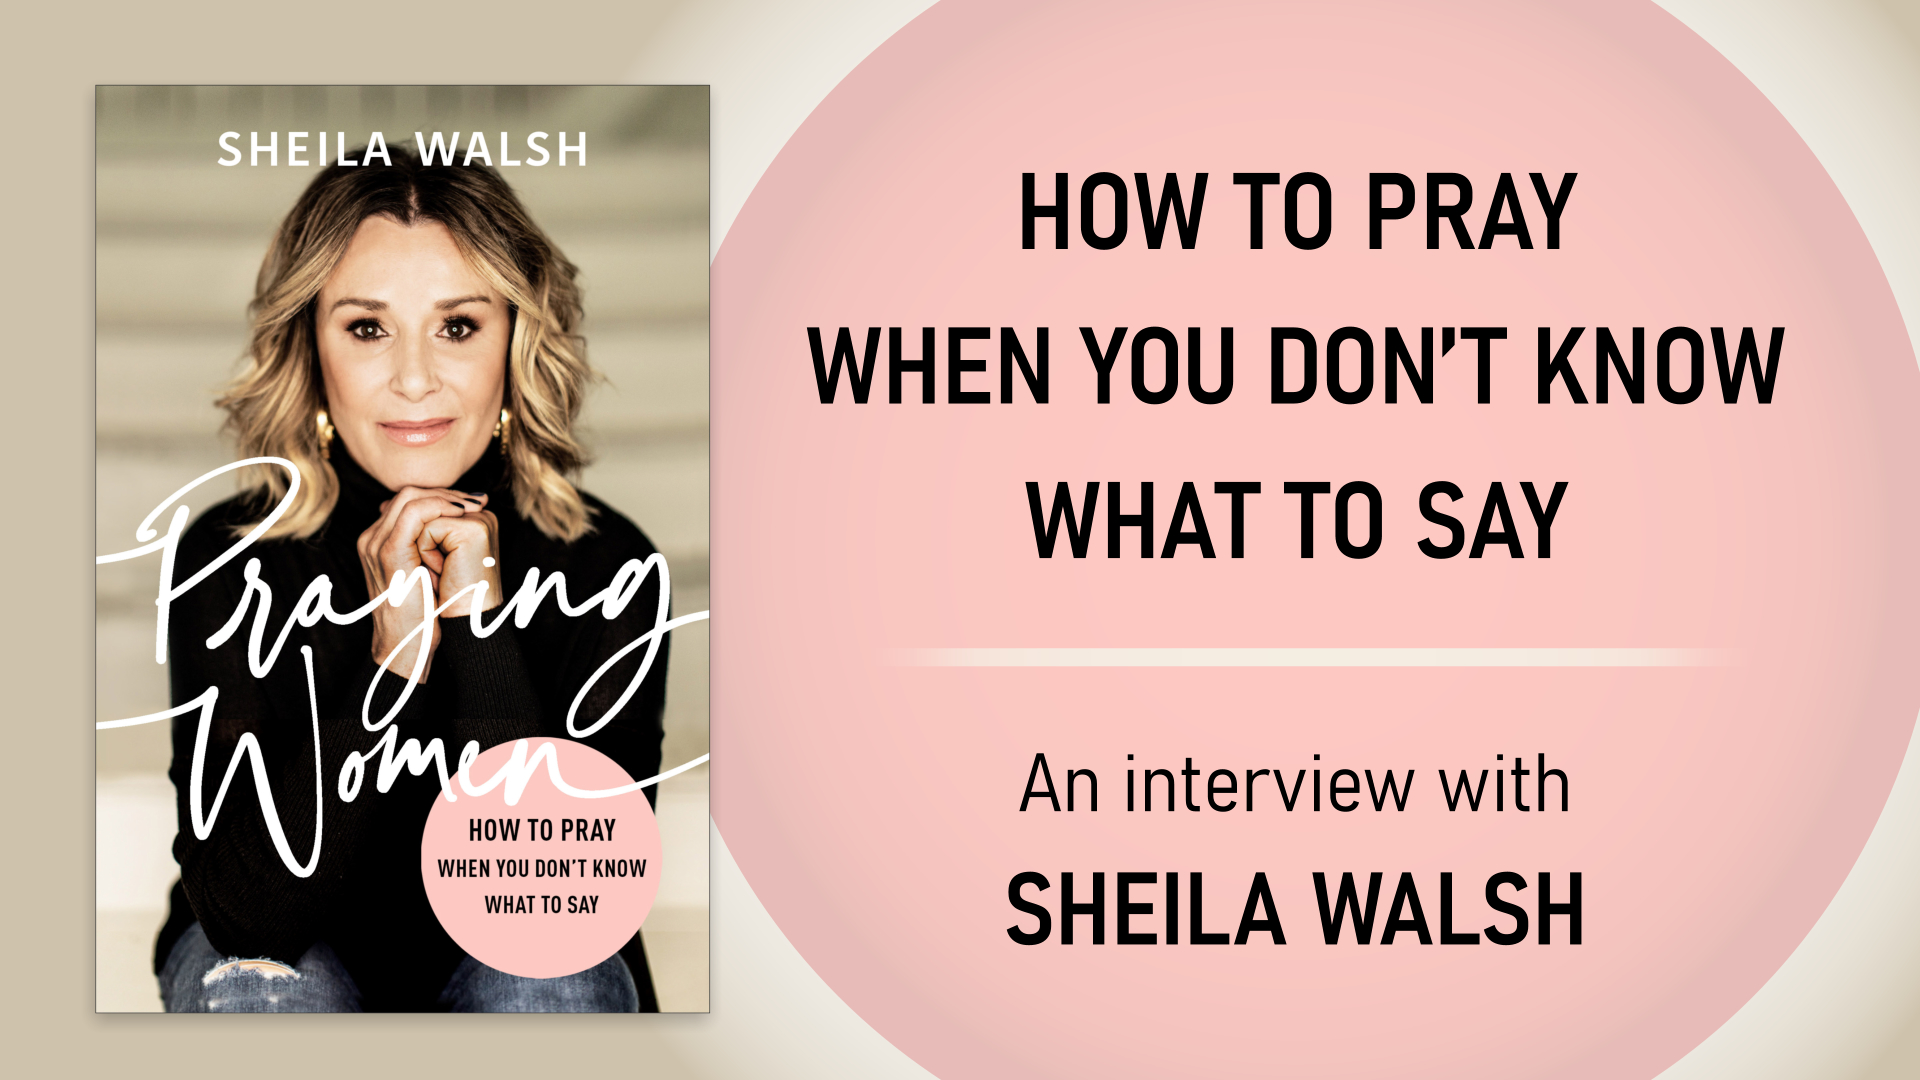 Praying Women - How to Pray When You Don't Know What to Say